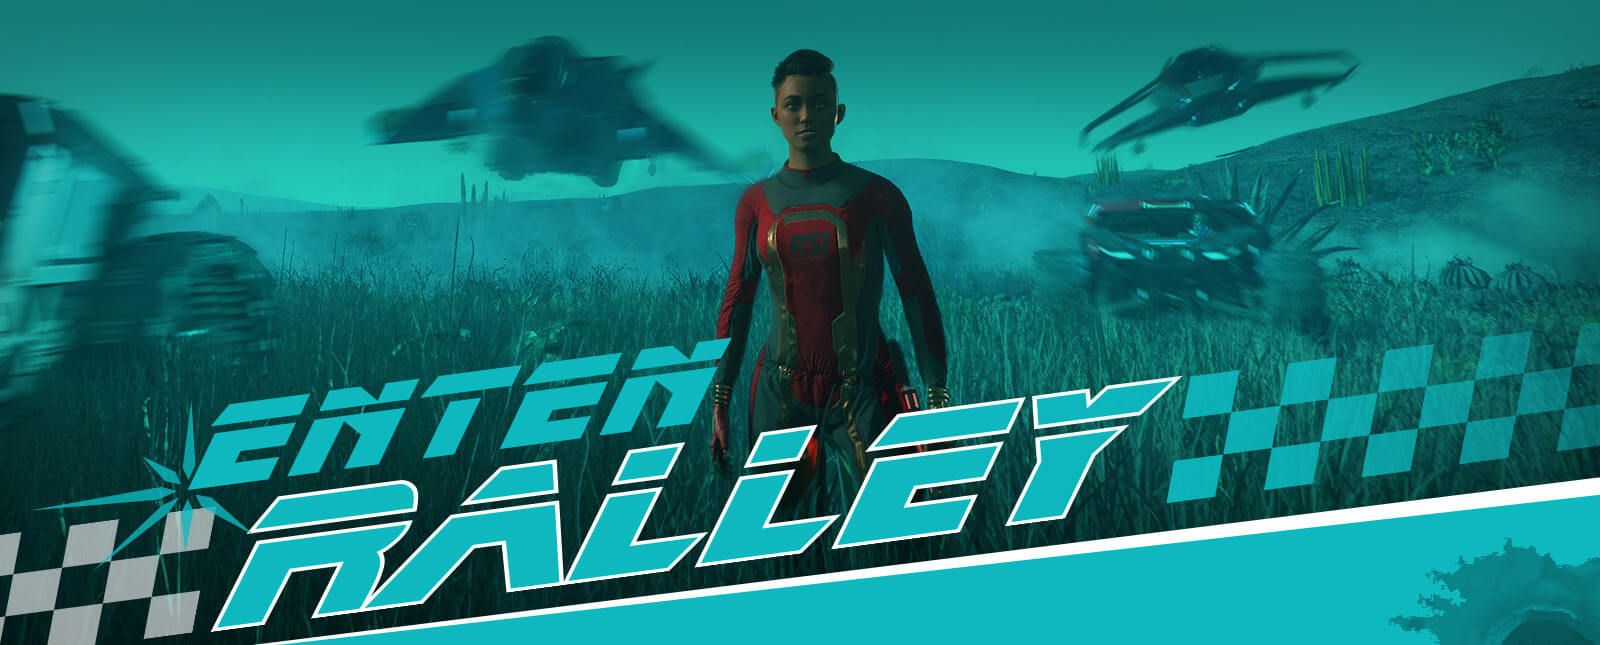 Haus Enten Star Citizen Ralley